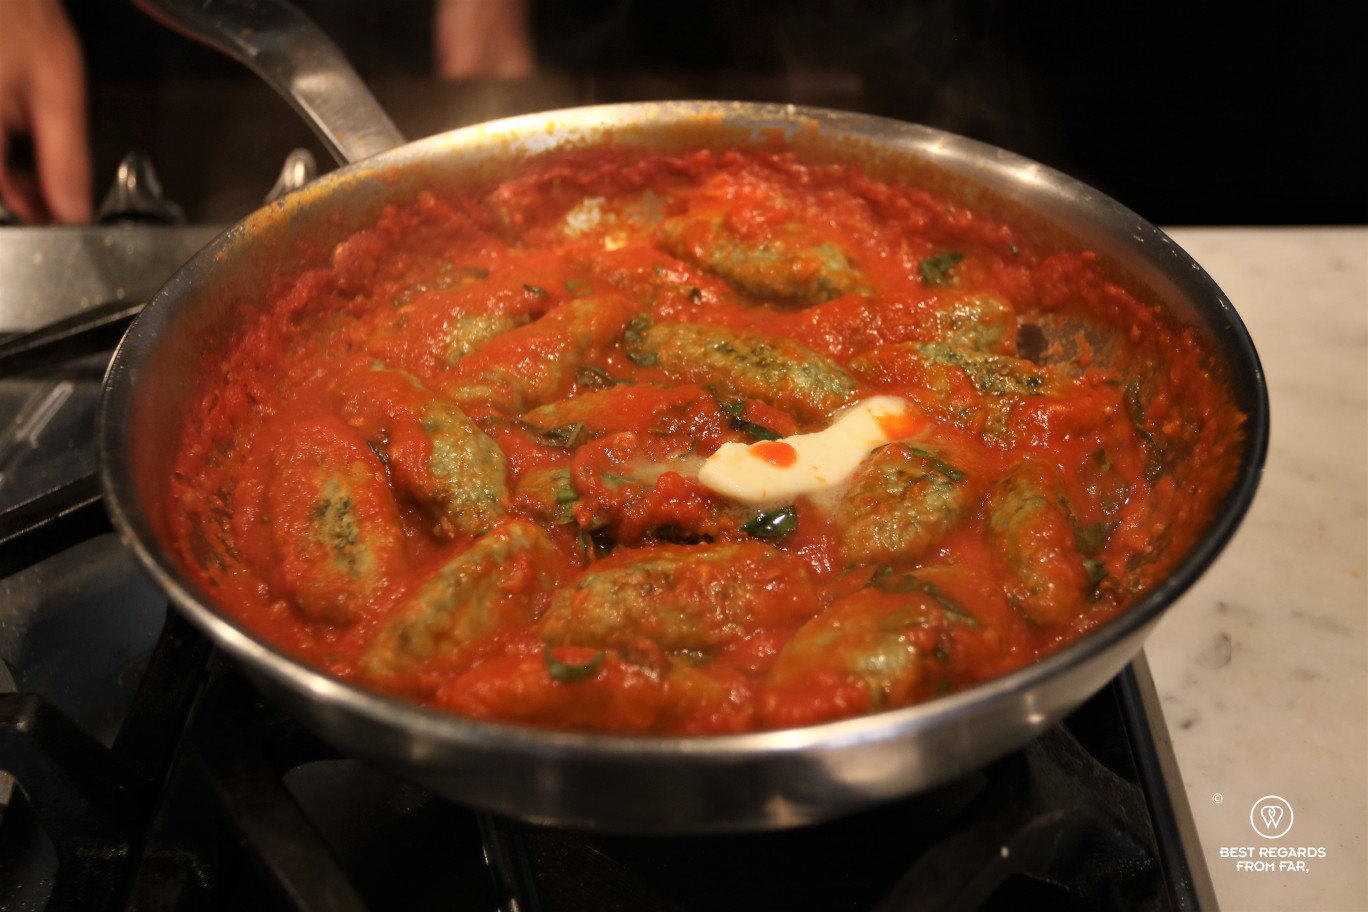 Green spinach and ricotta gnudis in tomato sauce in a large pan on a stove, Italy